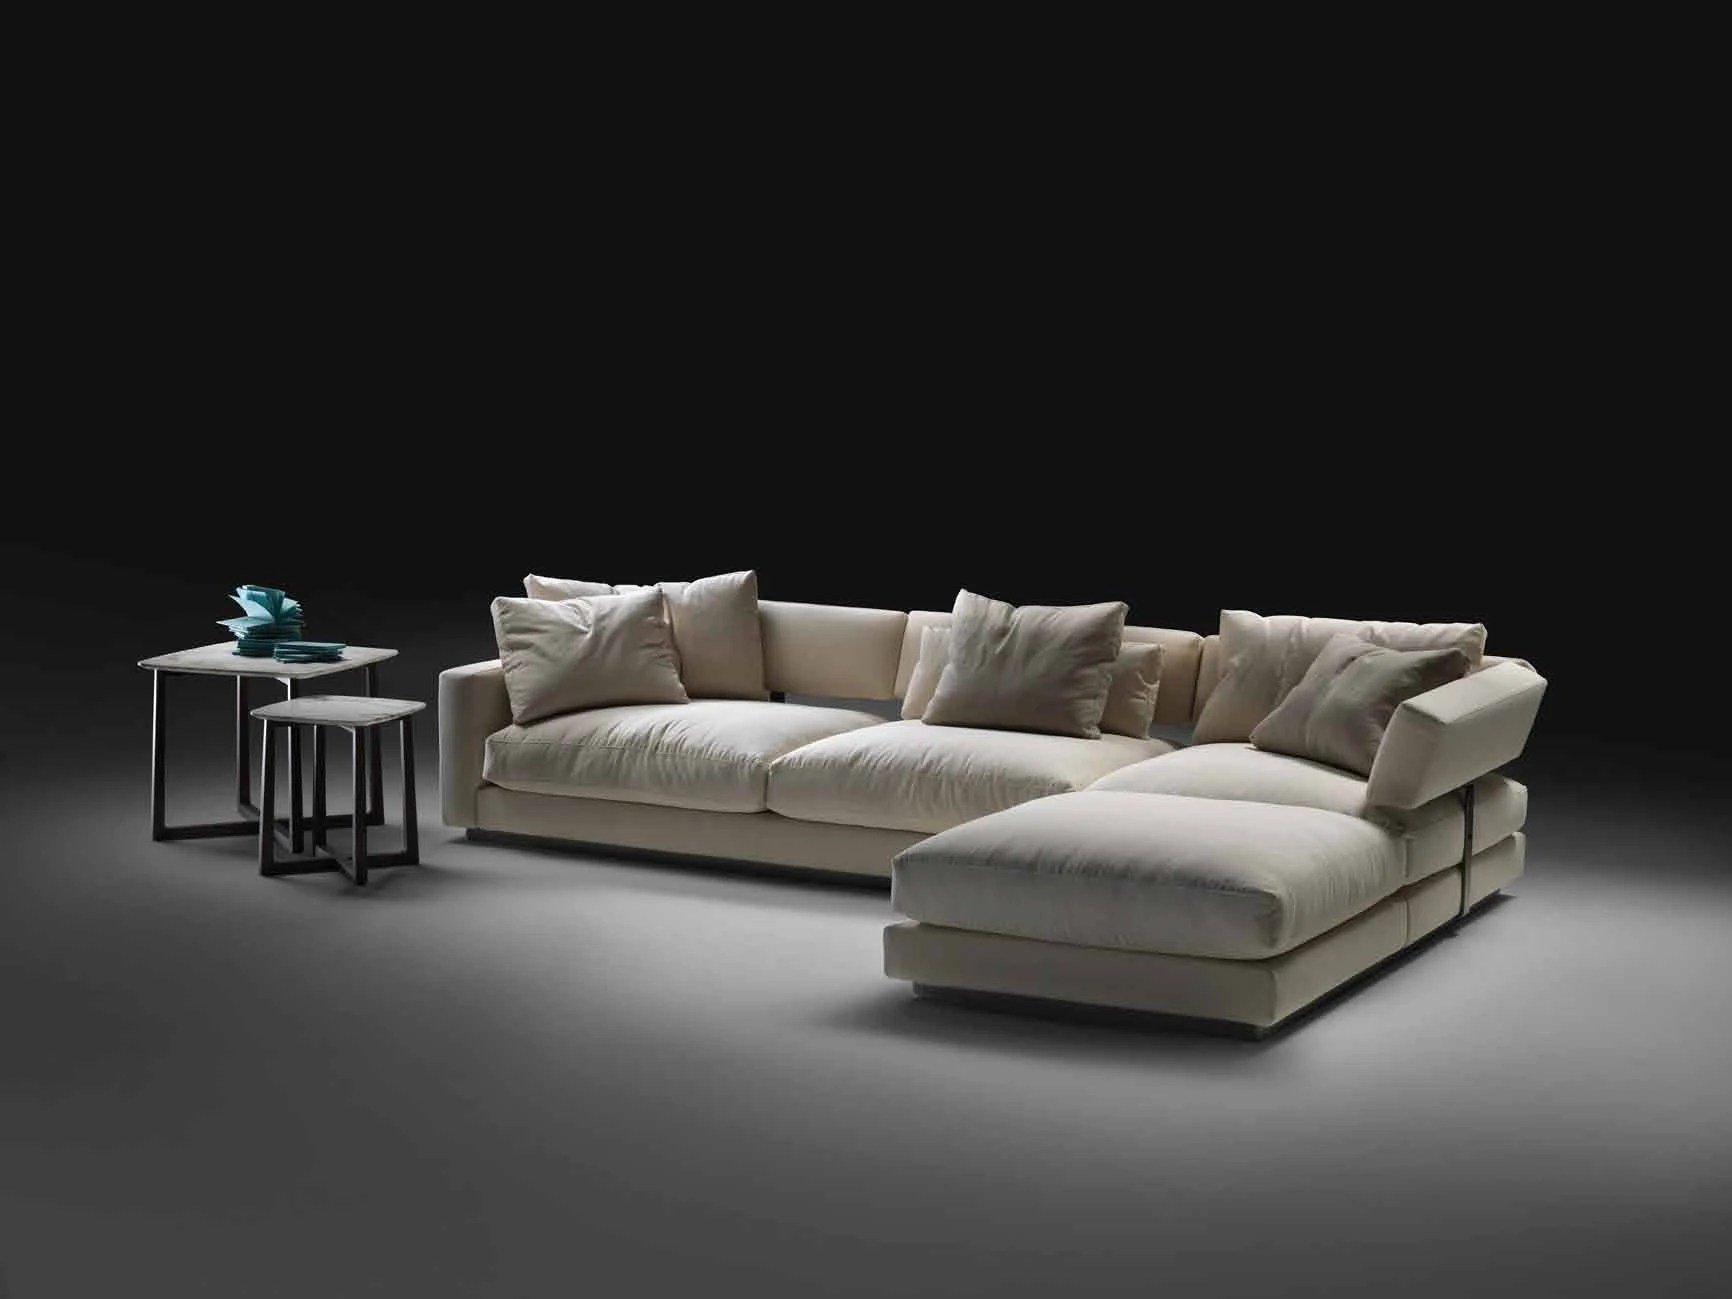 Modular Corner Sofa Upholstered In Leather Or Fabric Pleasure Flexform Luxury Furniture Mr